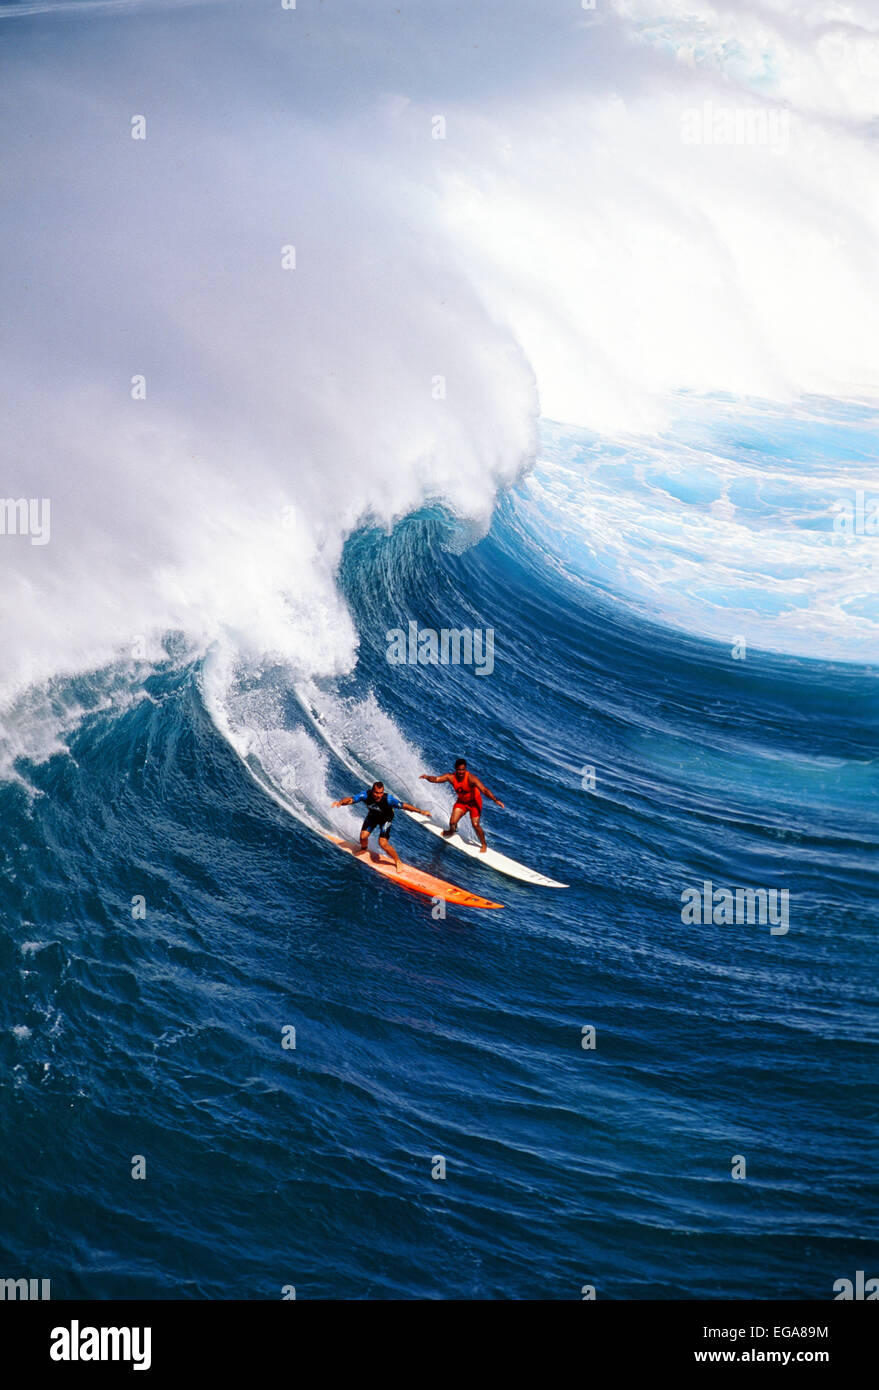 Waimea Bay, Surfing, North Shore, Oahu, Hawaii, Editorial use only no model release - Stock Image